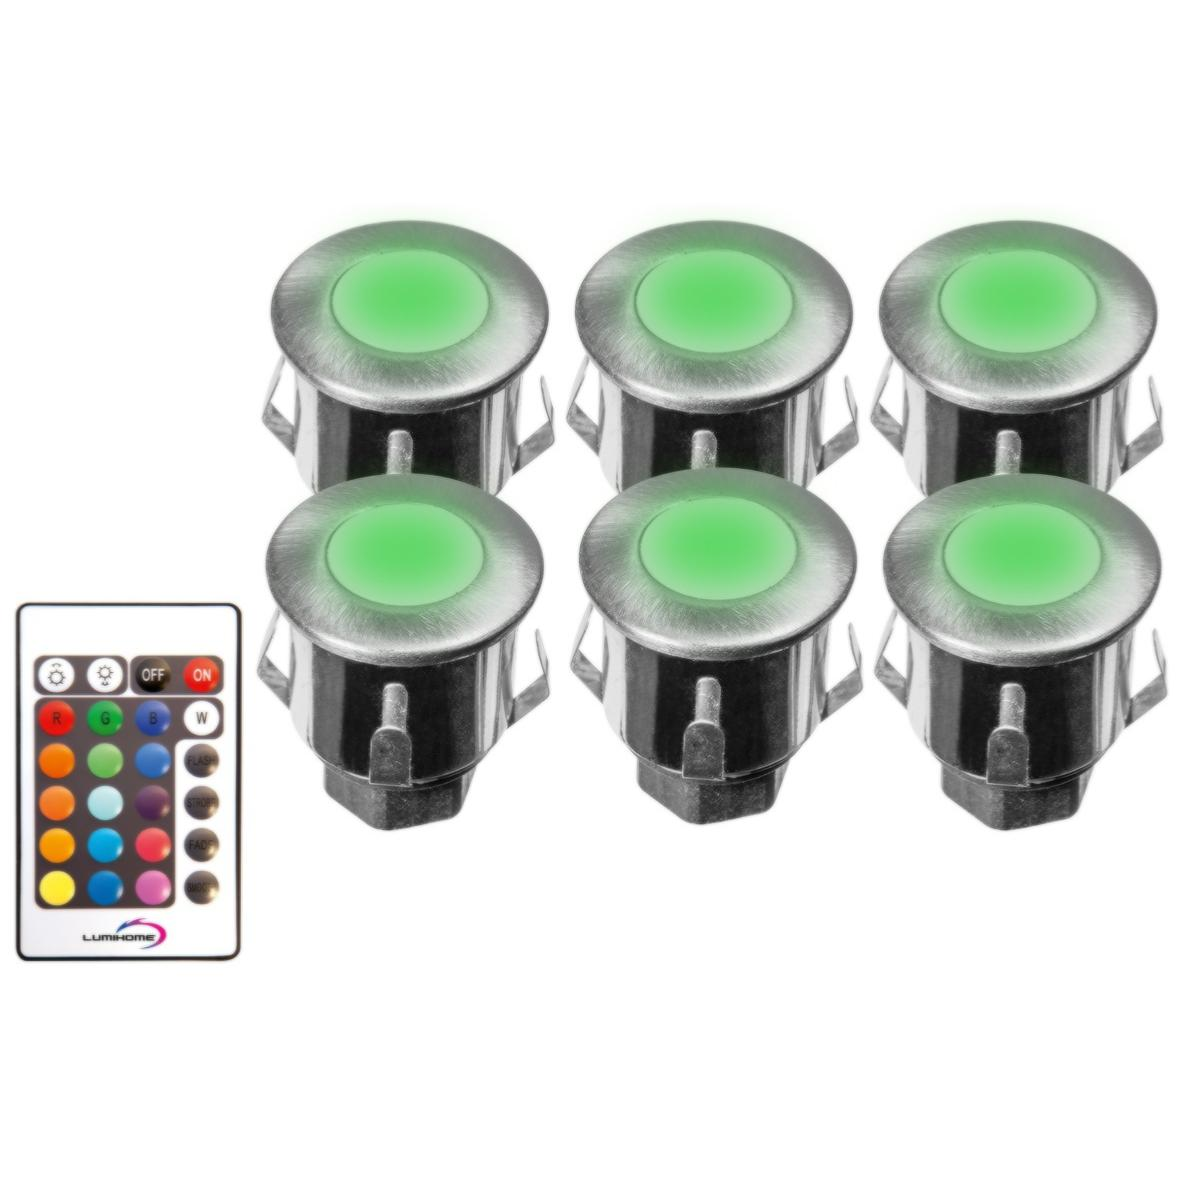 Spot terrasse piscine rgb 12v led ip67 kit de 6 spot led rgb for Eclairage exterieur 12v